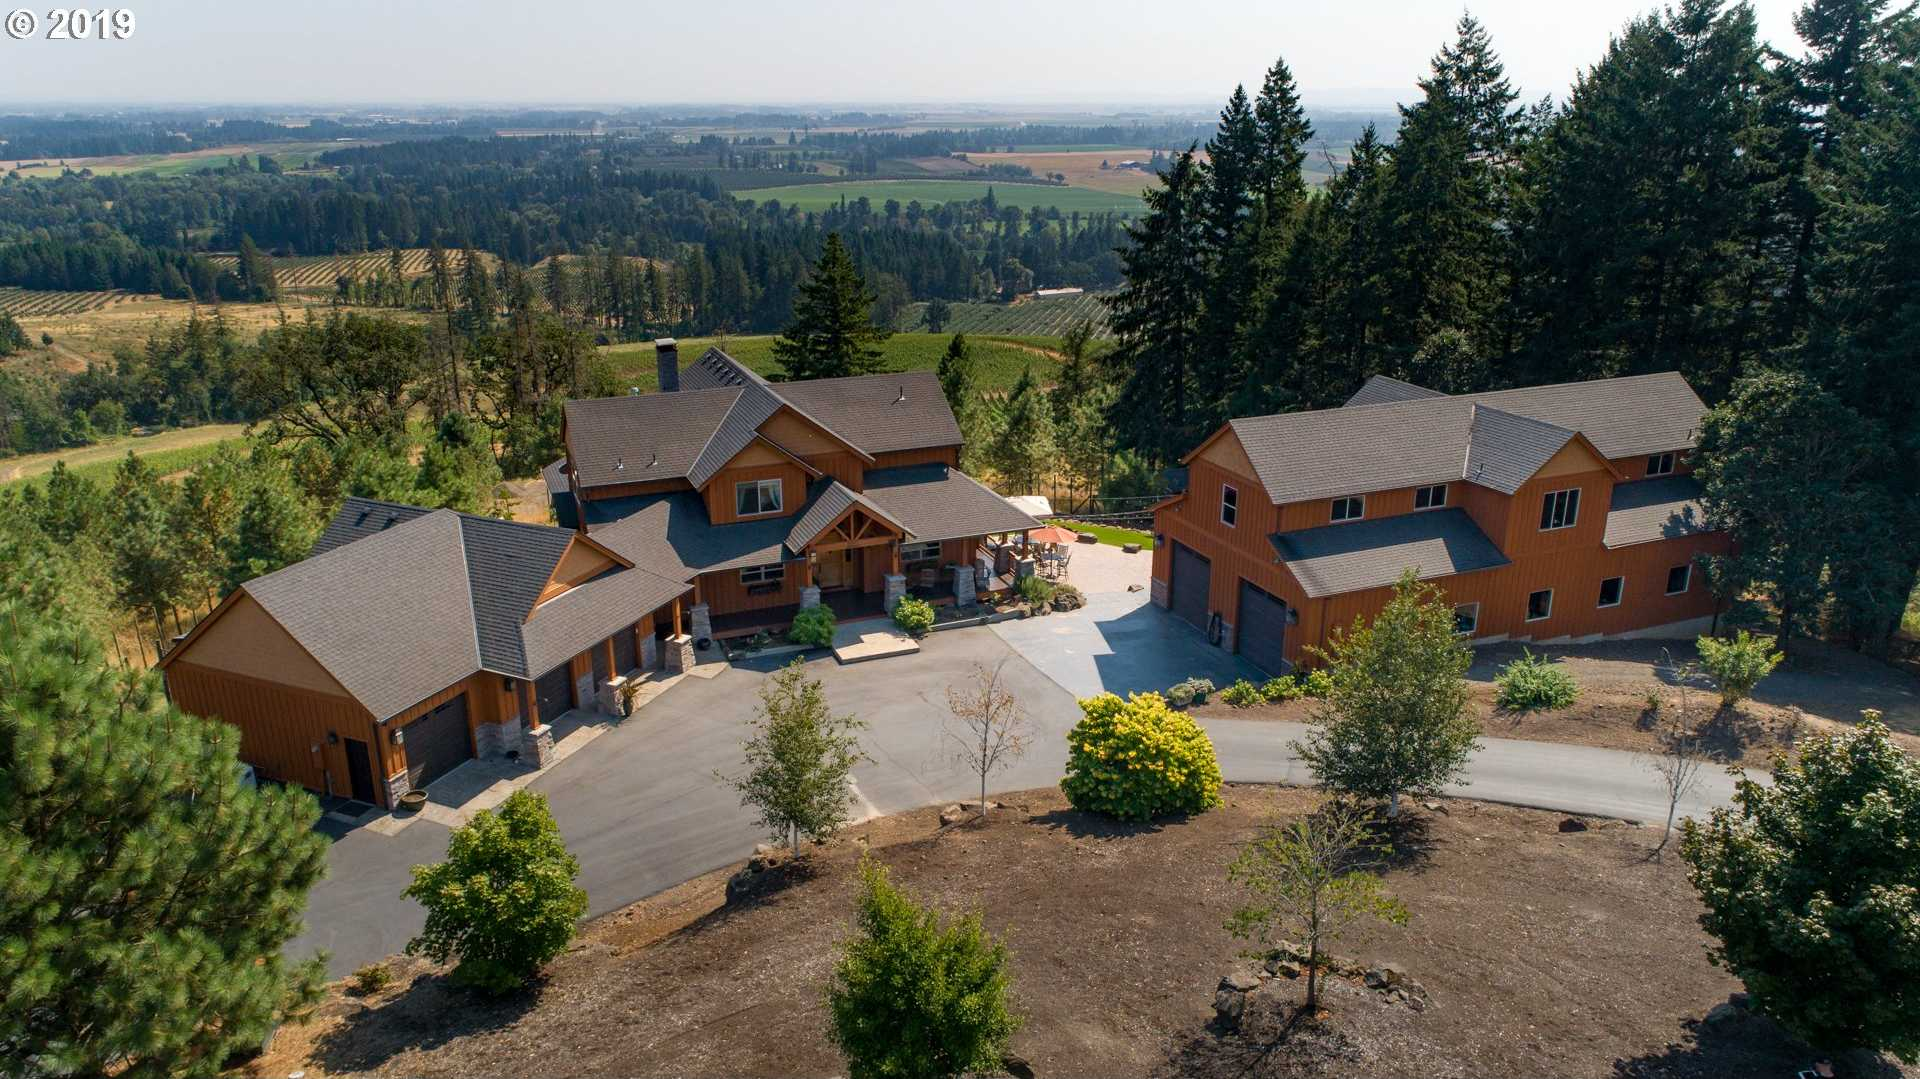 $2,200,000 - 4Br/5Ba -  for Sale in Ladd Hill Estates, Newberg